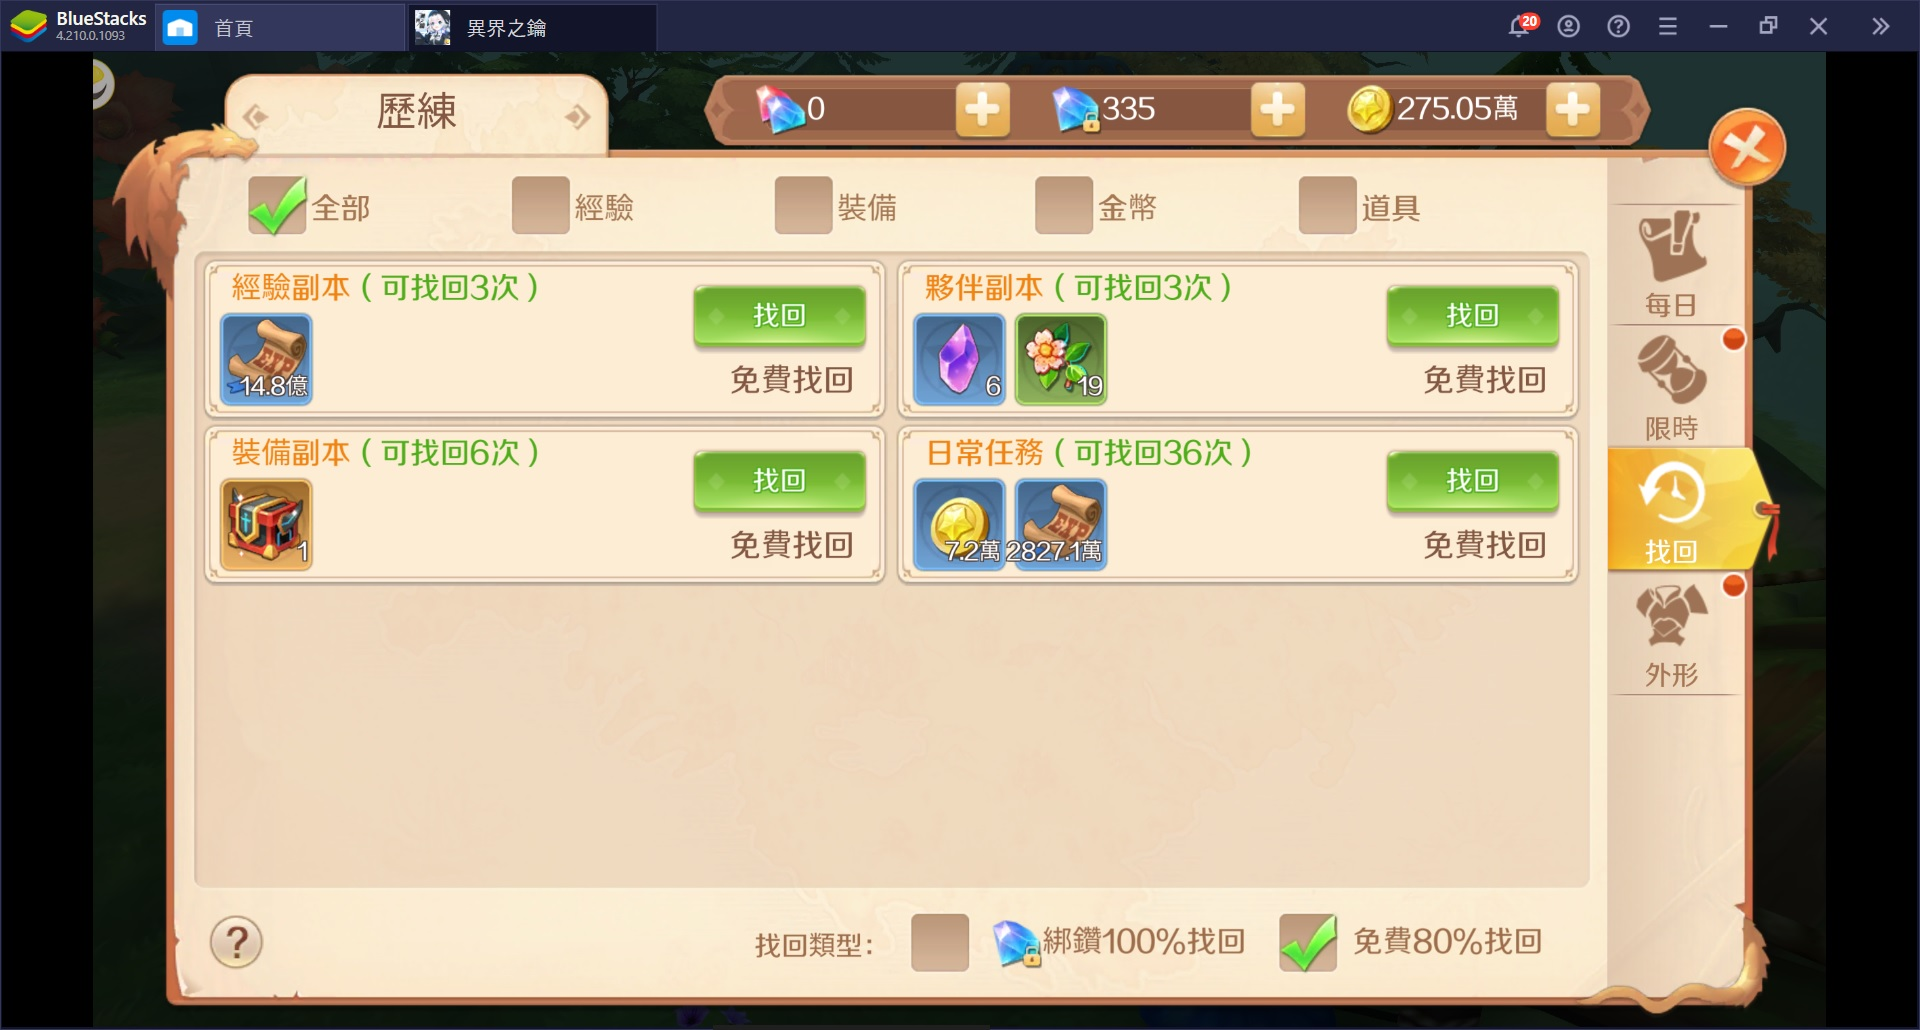 使用BlueStacks在PC上遊玩星際風格MMORPG《異界之鑰》